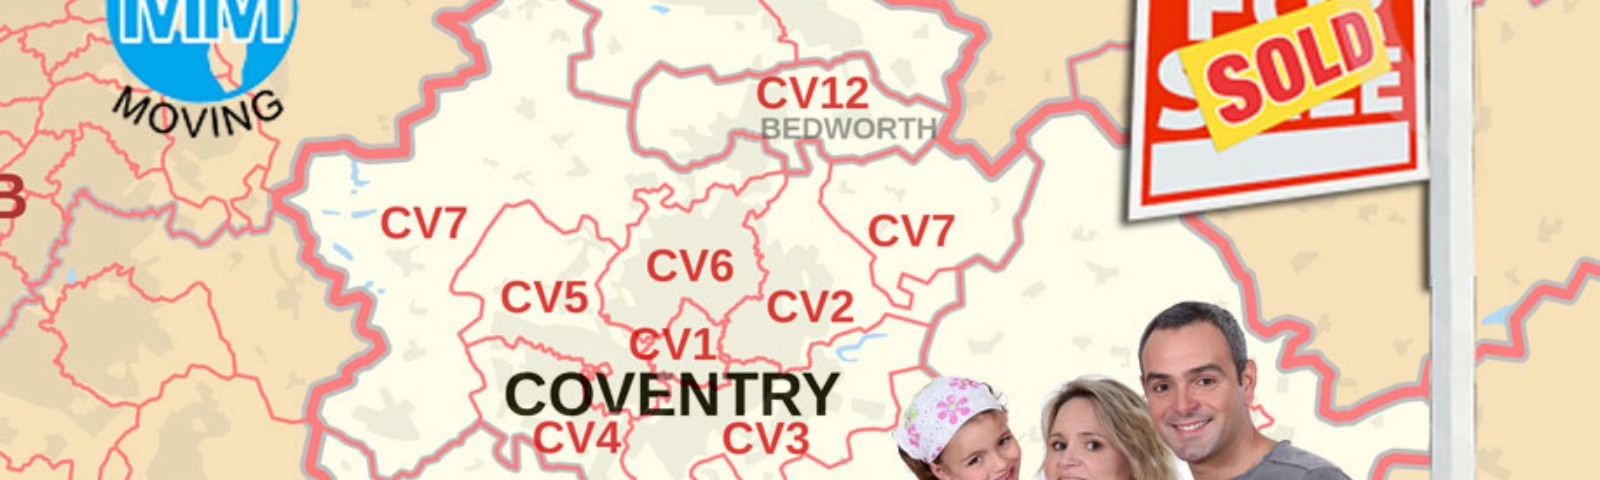 places-to-live-in-coventry